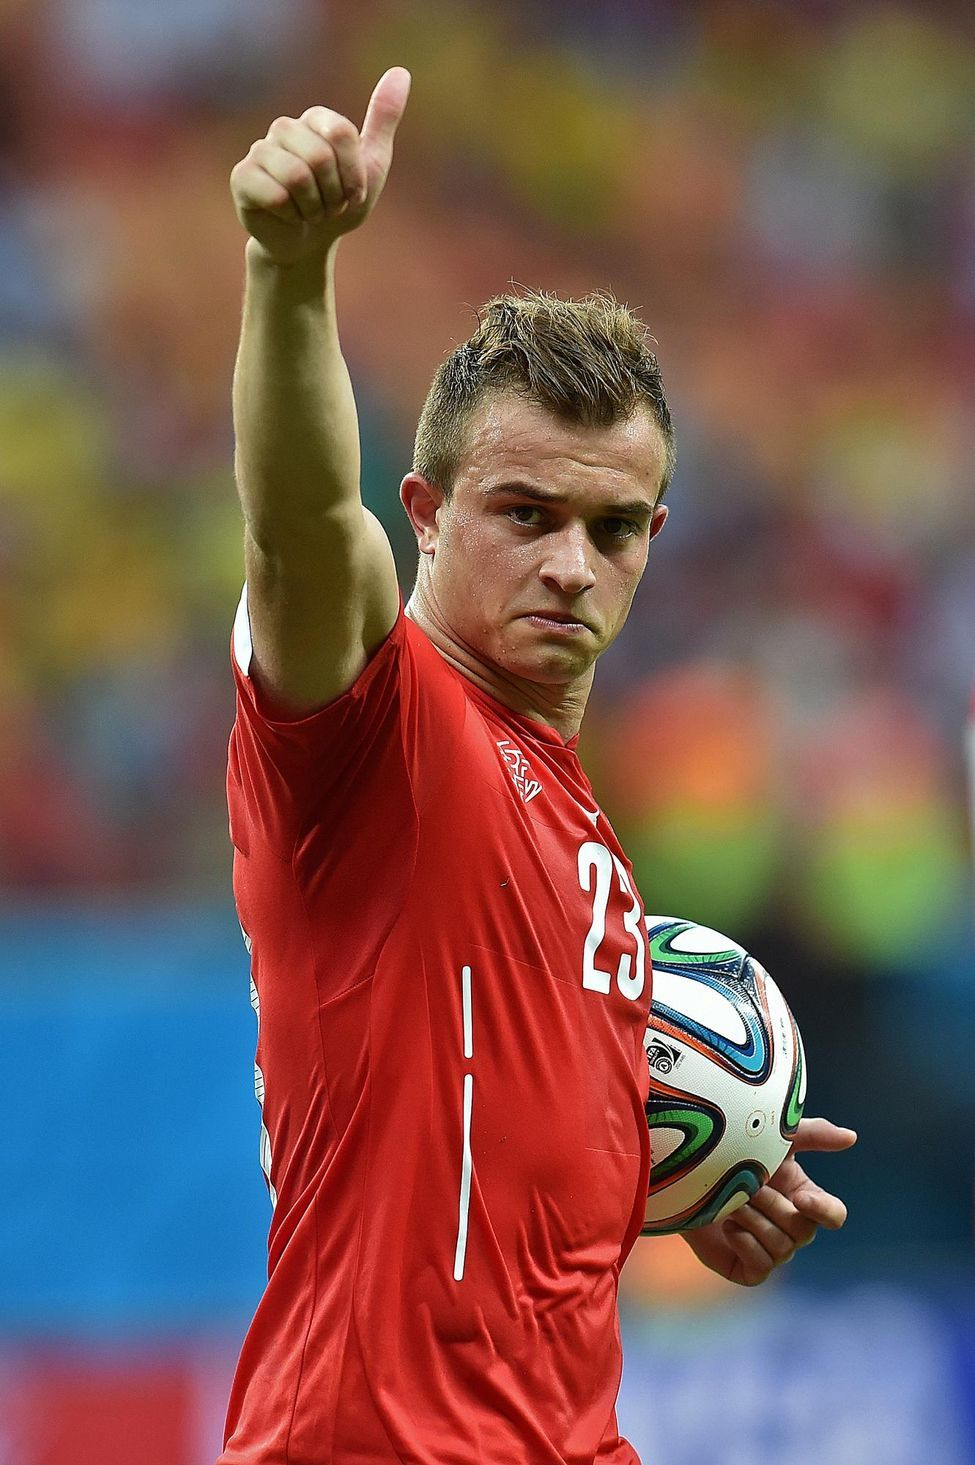 Xherdan Shaqiri Of Switzerland In The 2014 World Cup Fifa 2014 World Cup Liverpool Team World Football